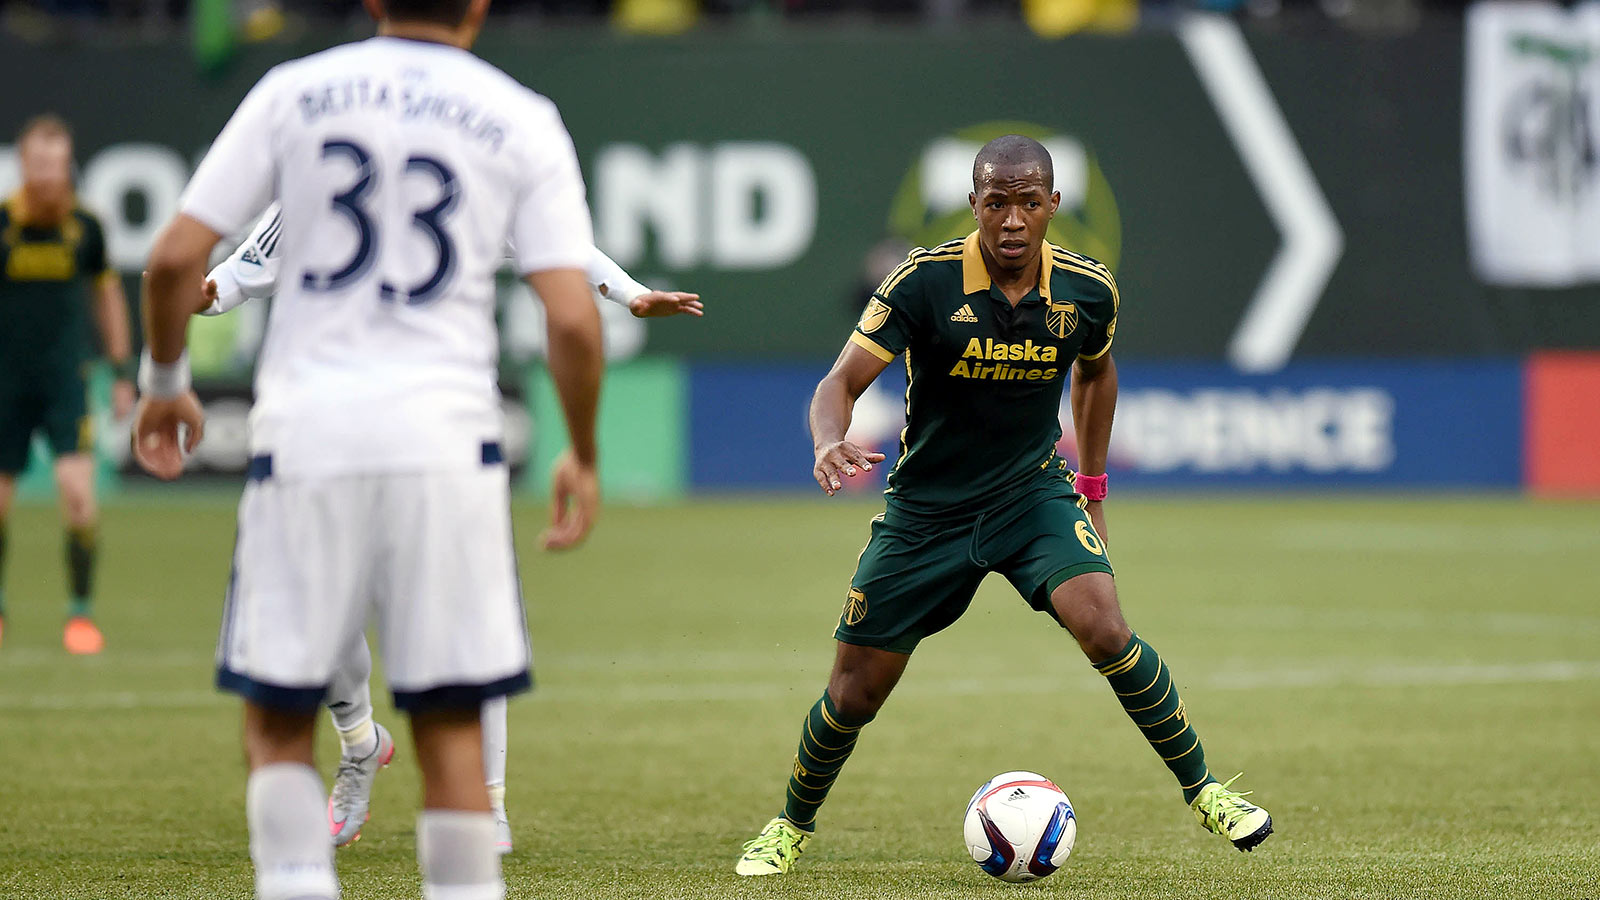 Celtic target Darlington Nagbe, but it's probably a tough sell for Portland Timbers